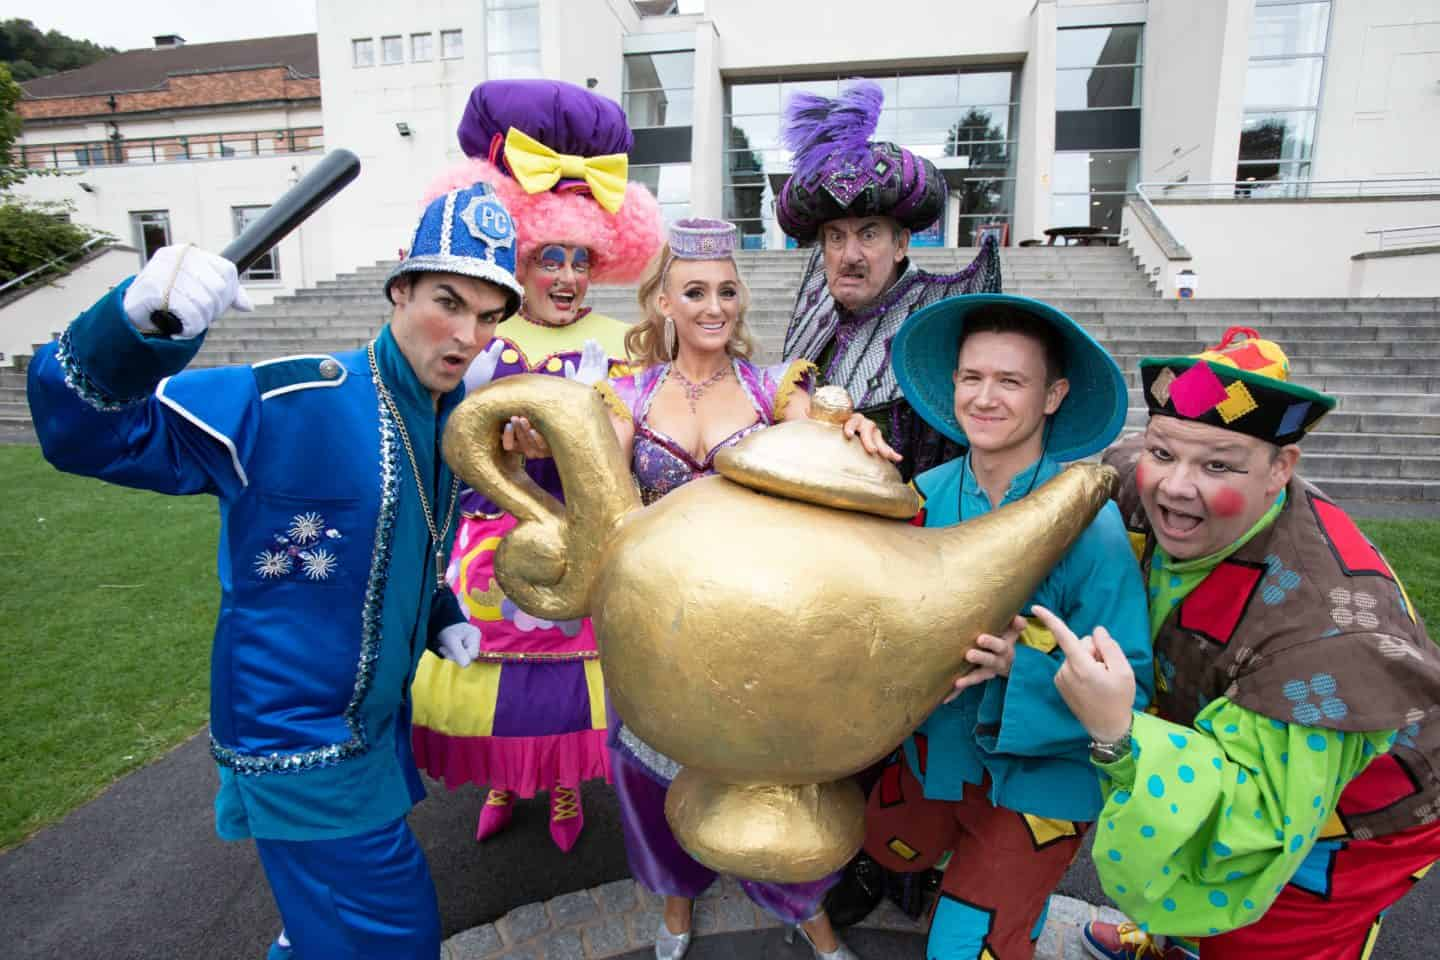 Aladdin Pantomime at Malvern Theatres: Review